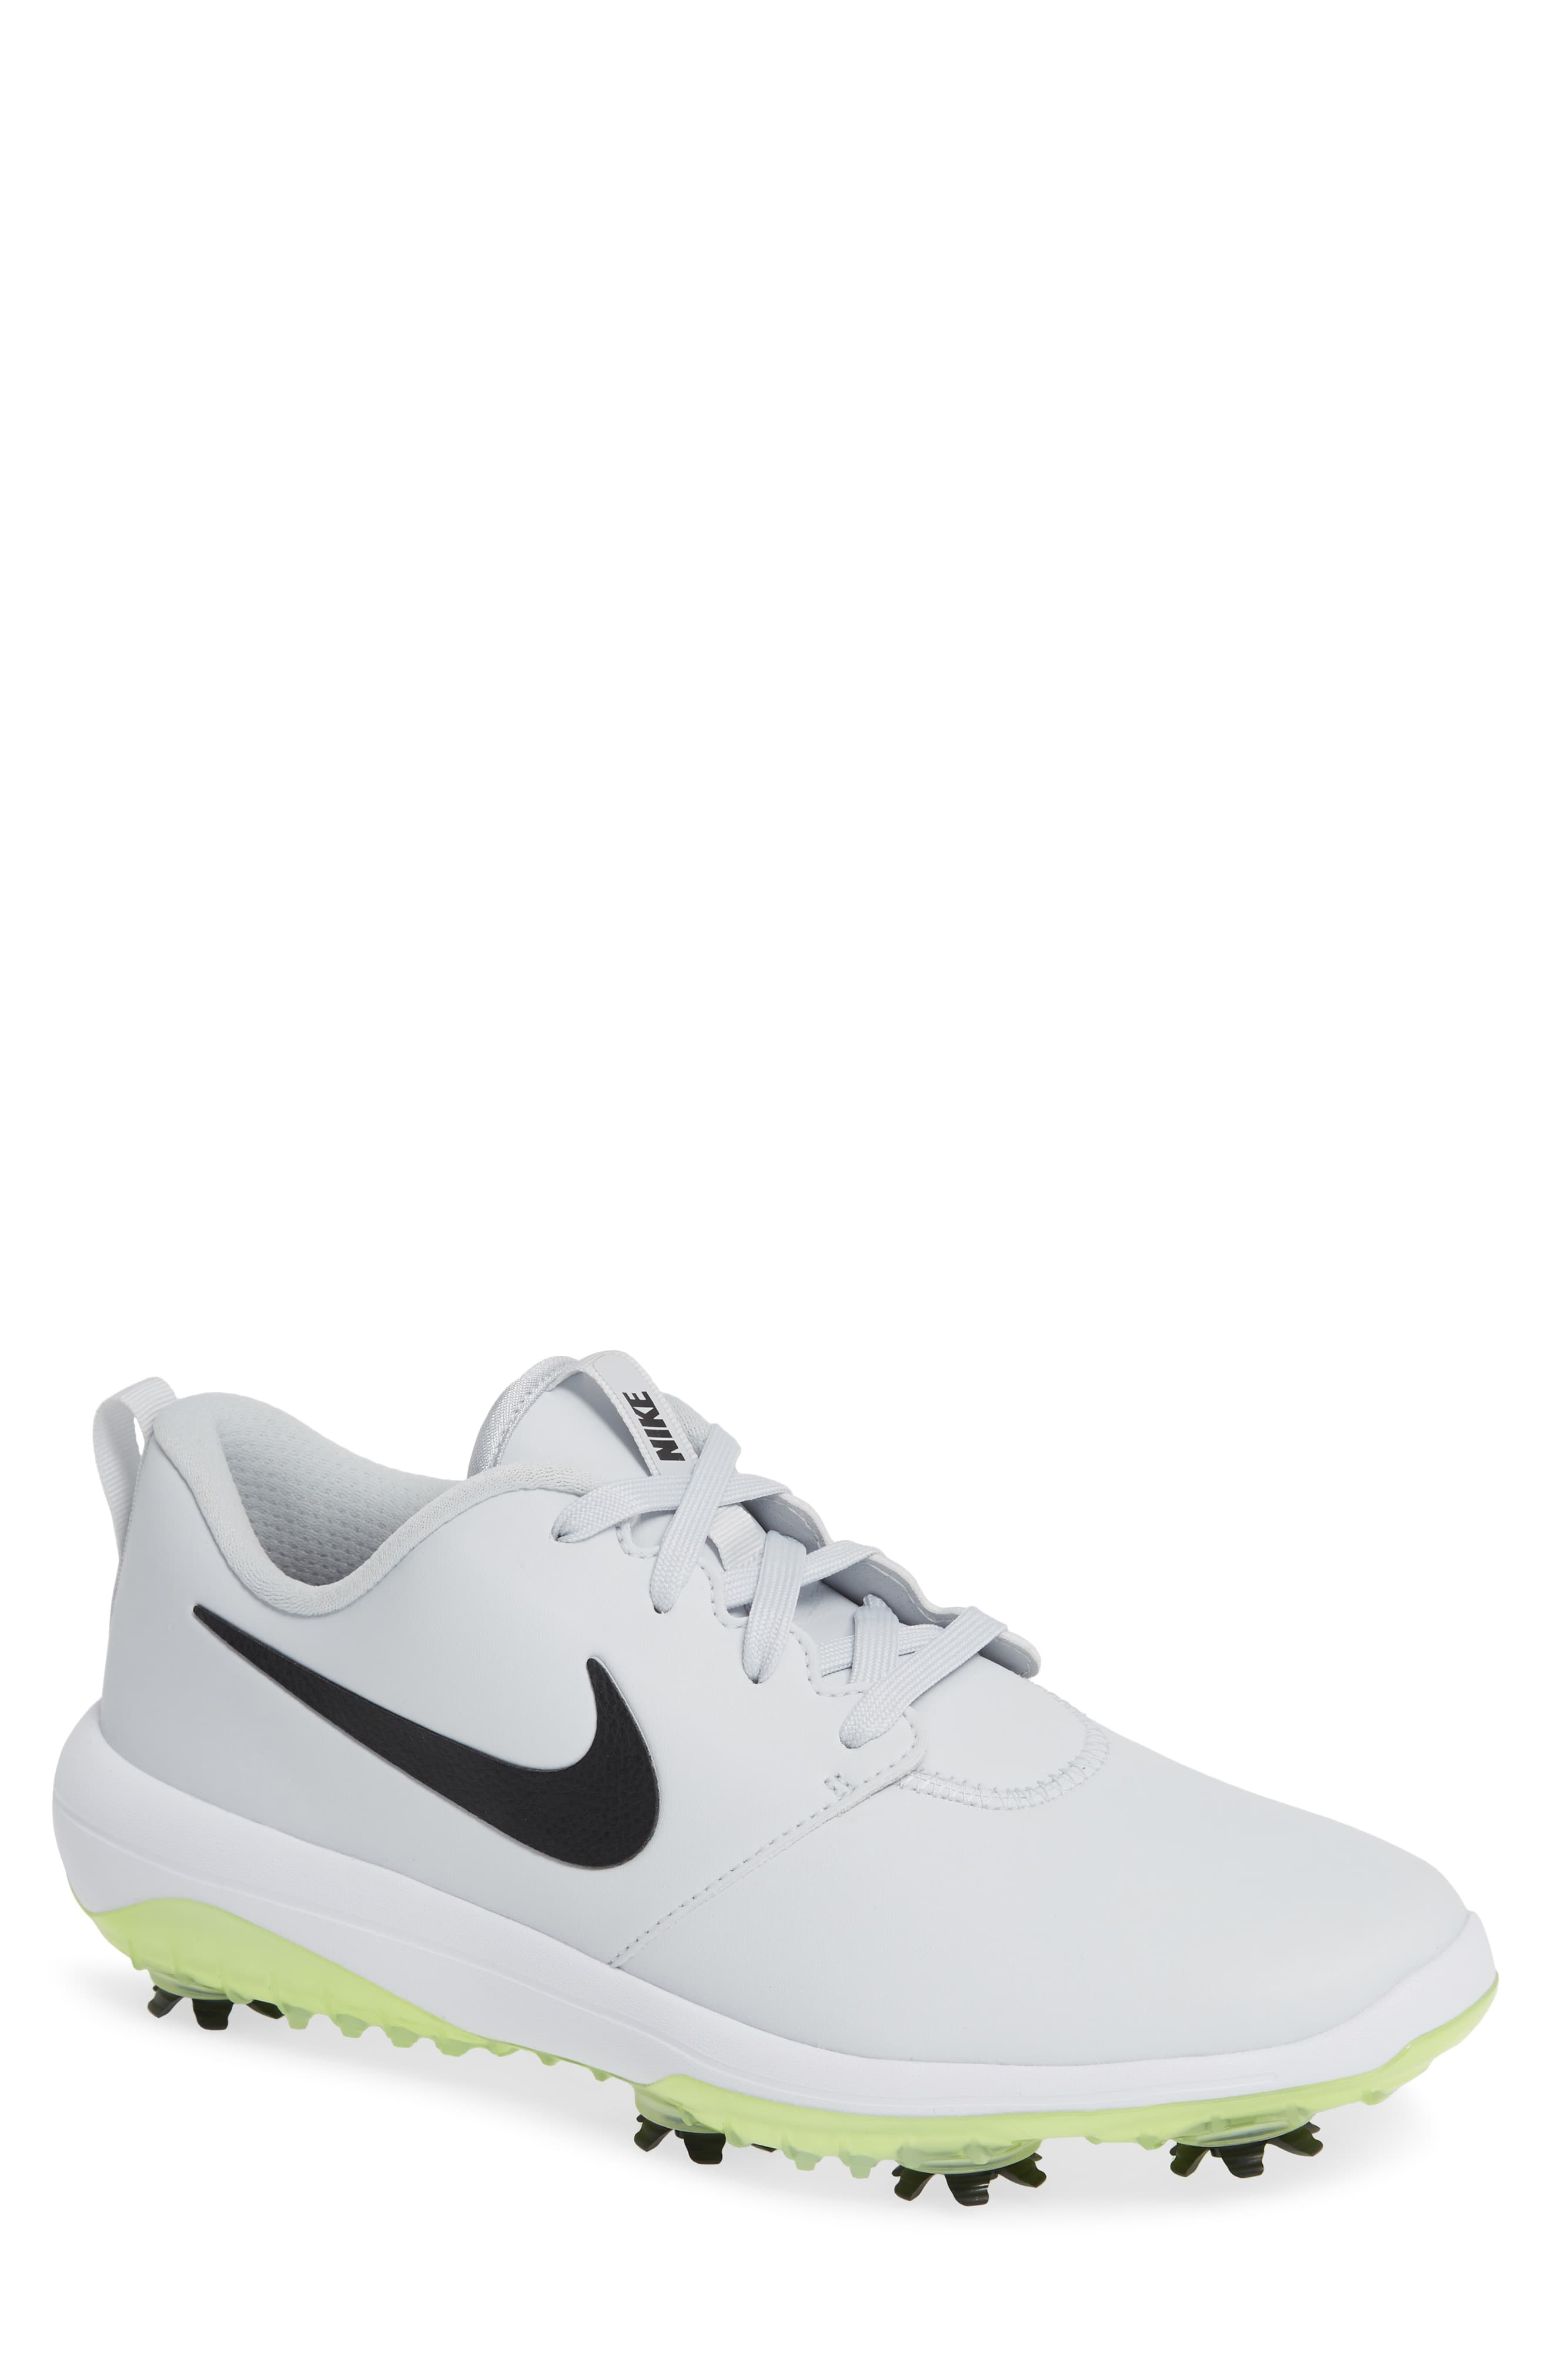 Nike Roshe G Tour Golf Shoe in 2019 | Products | Golf shoes